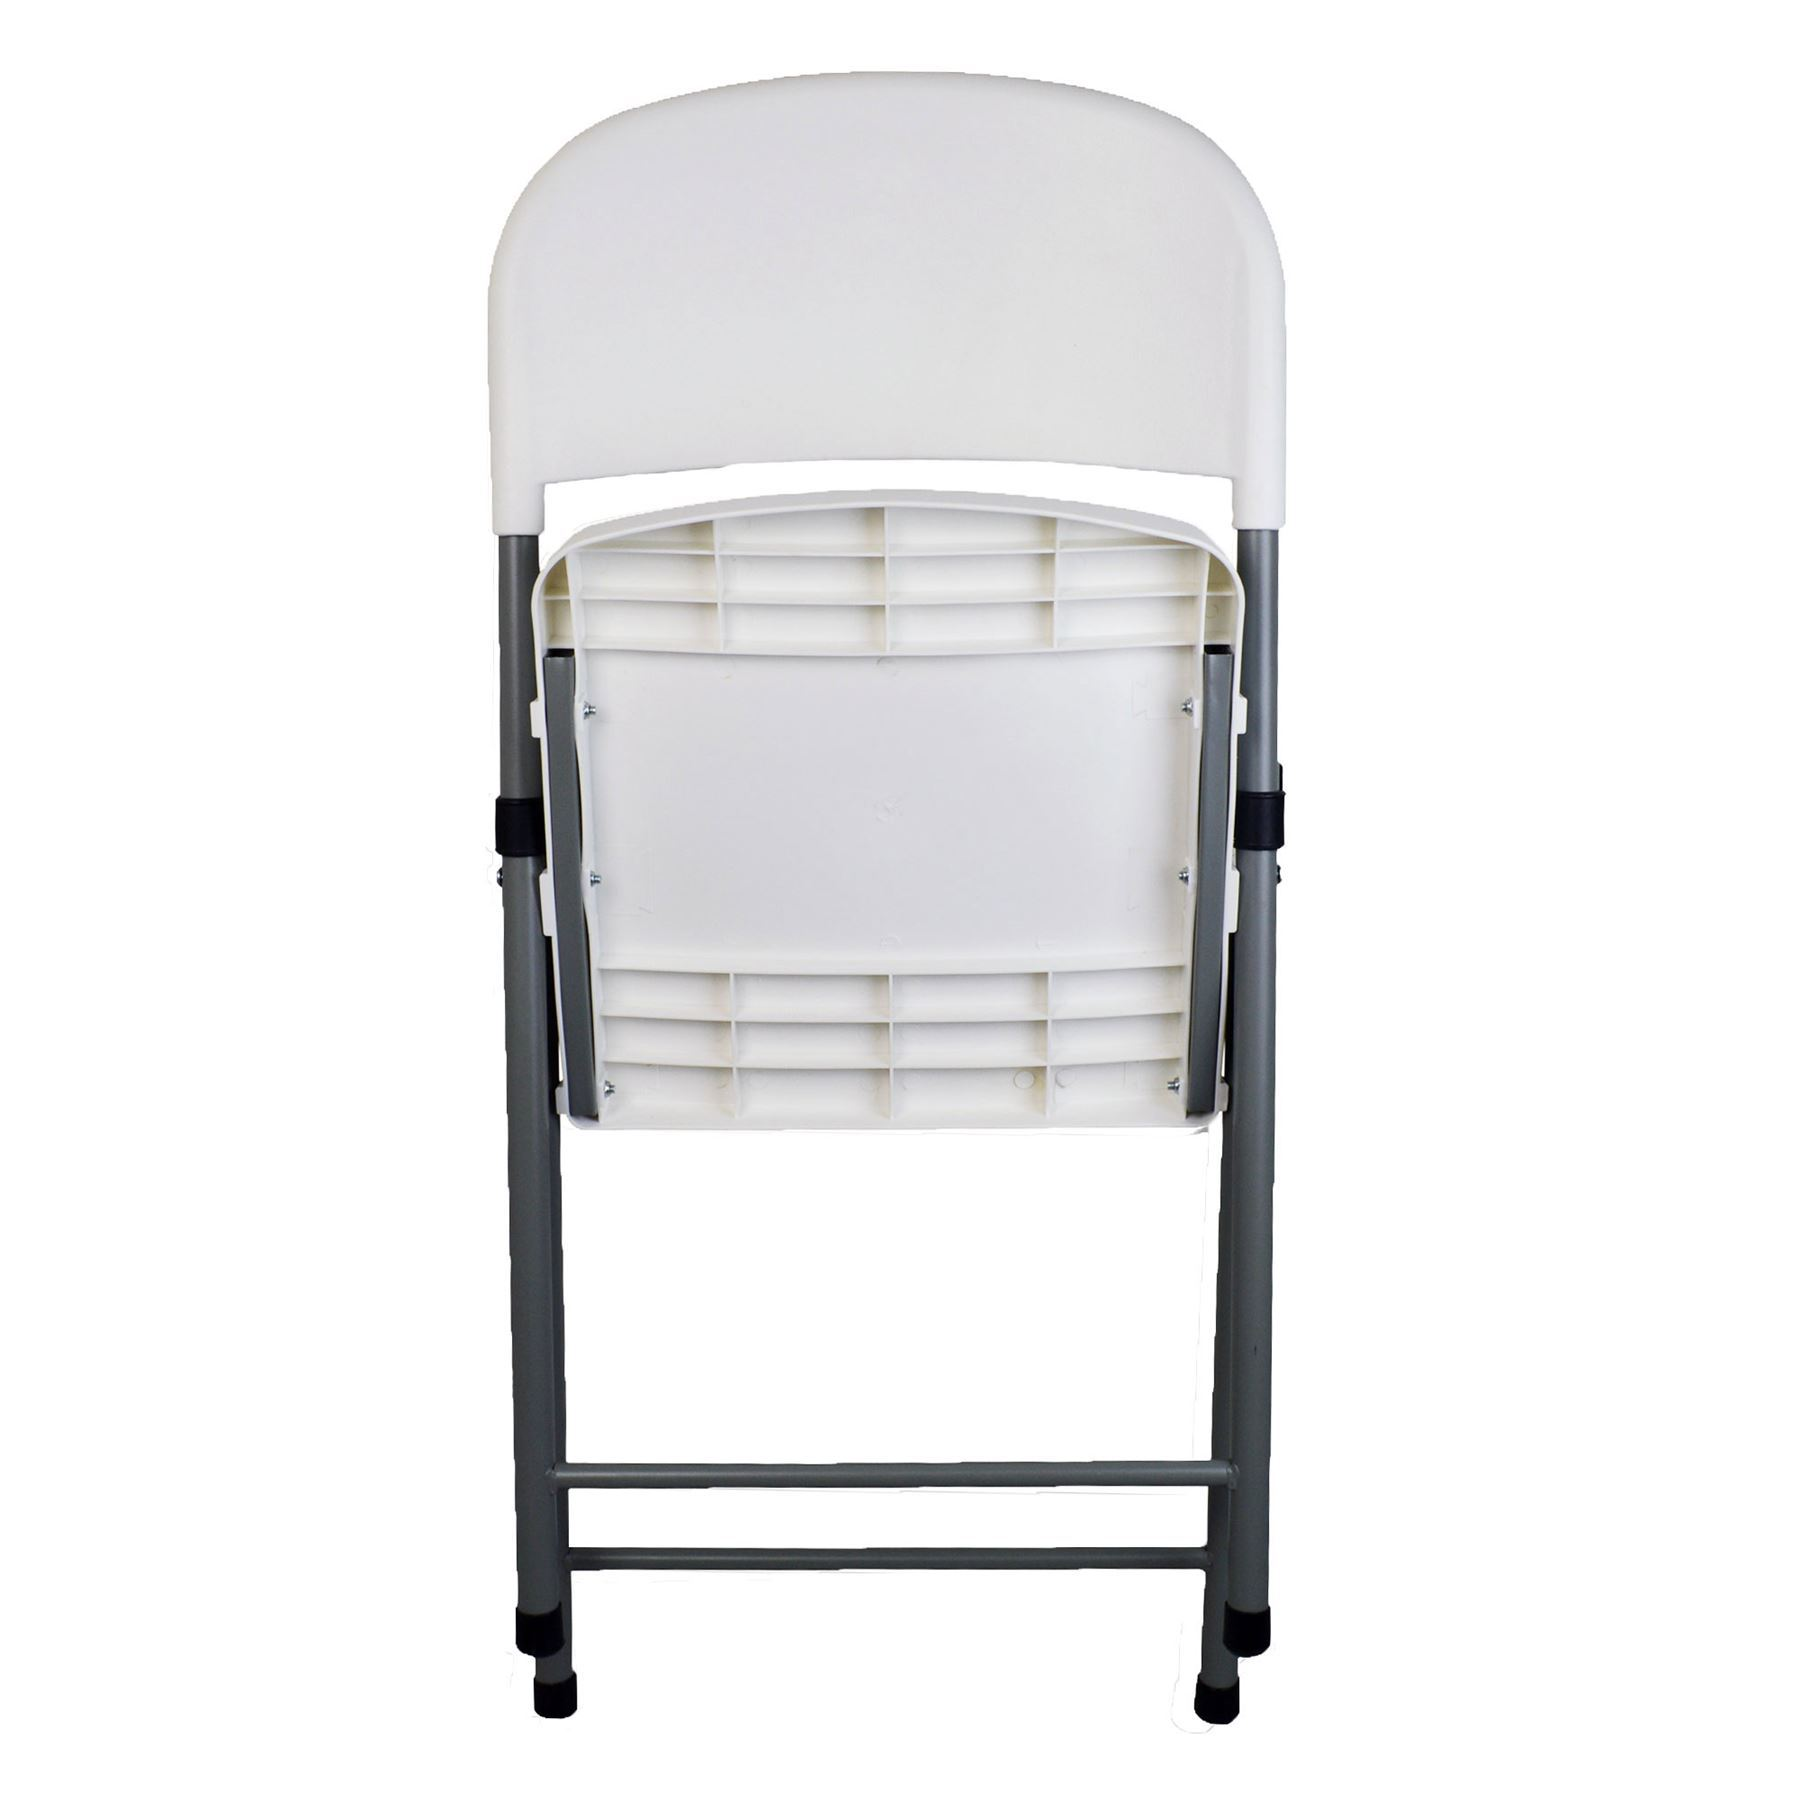 indoor folding chairs nz deluxe chair in a bag outdoor office garden camping